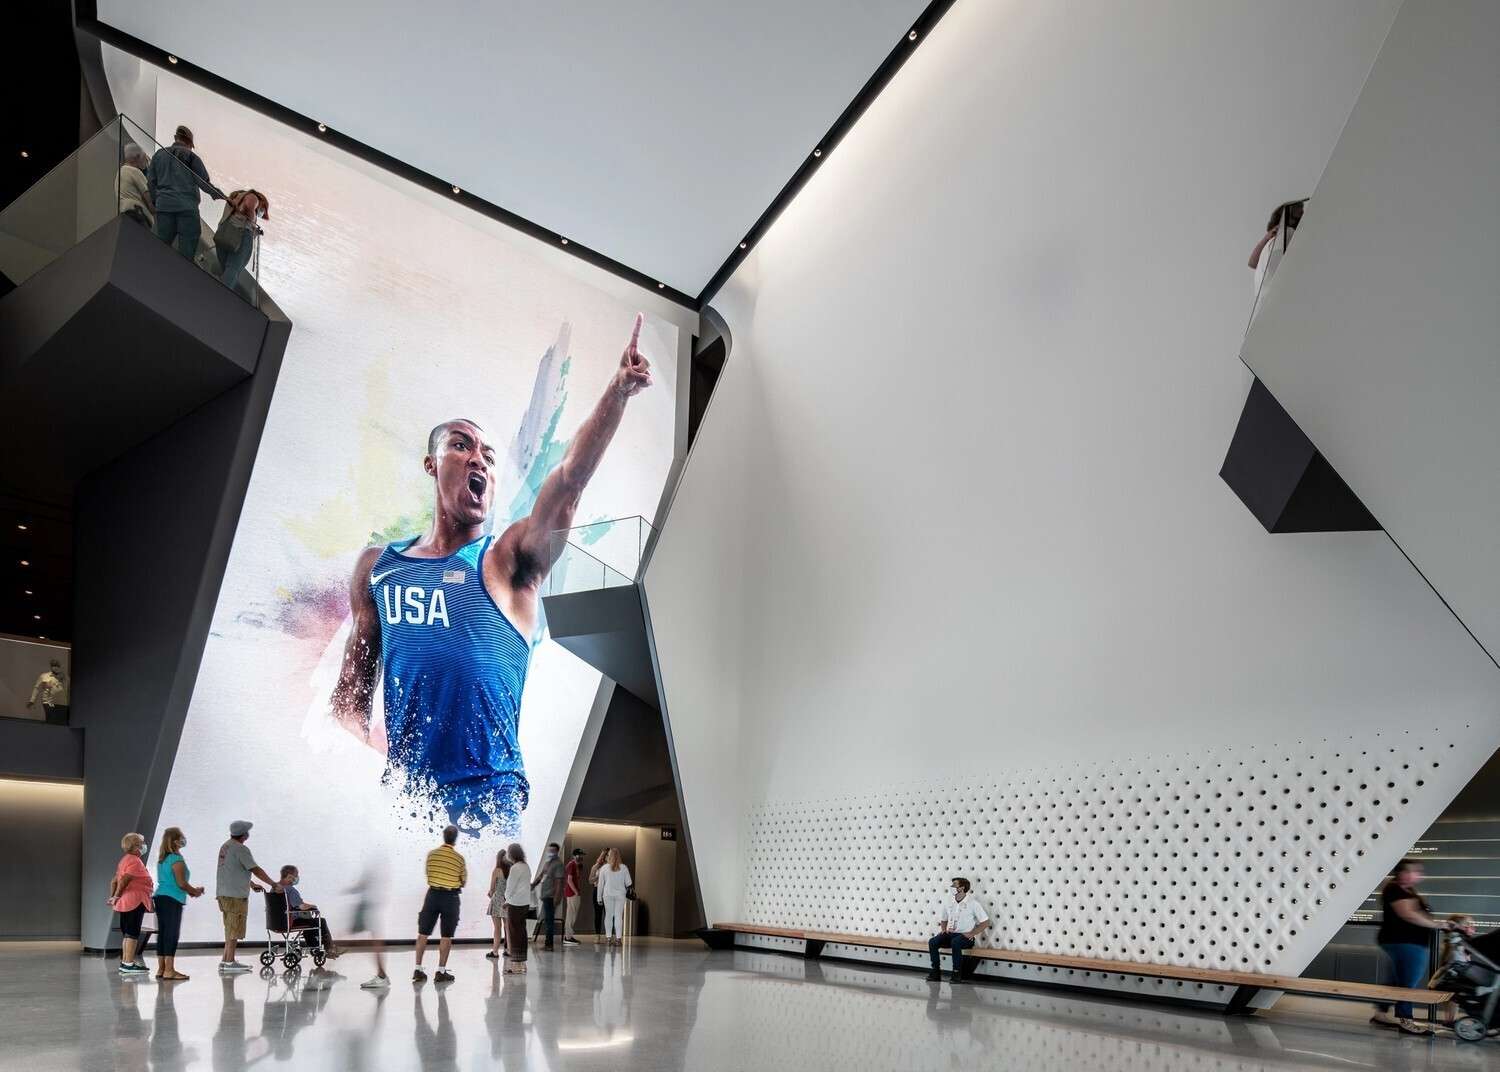 Glass fiber reinforced gypsum, or GFRG, is one of the most popular architectural products for custom panels, columns, trims, ceilings, and other finished castings. As seen here in the US Olympic Paralympic Museum.